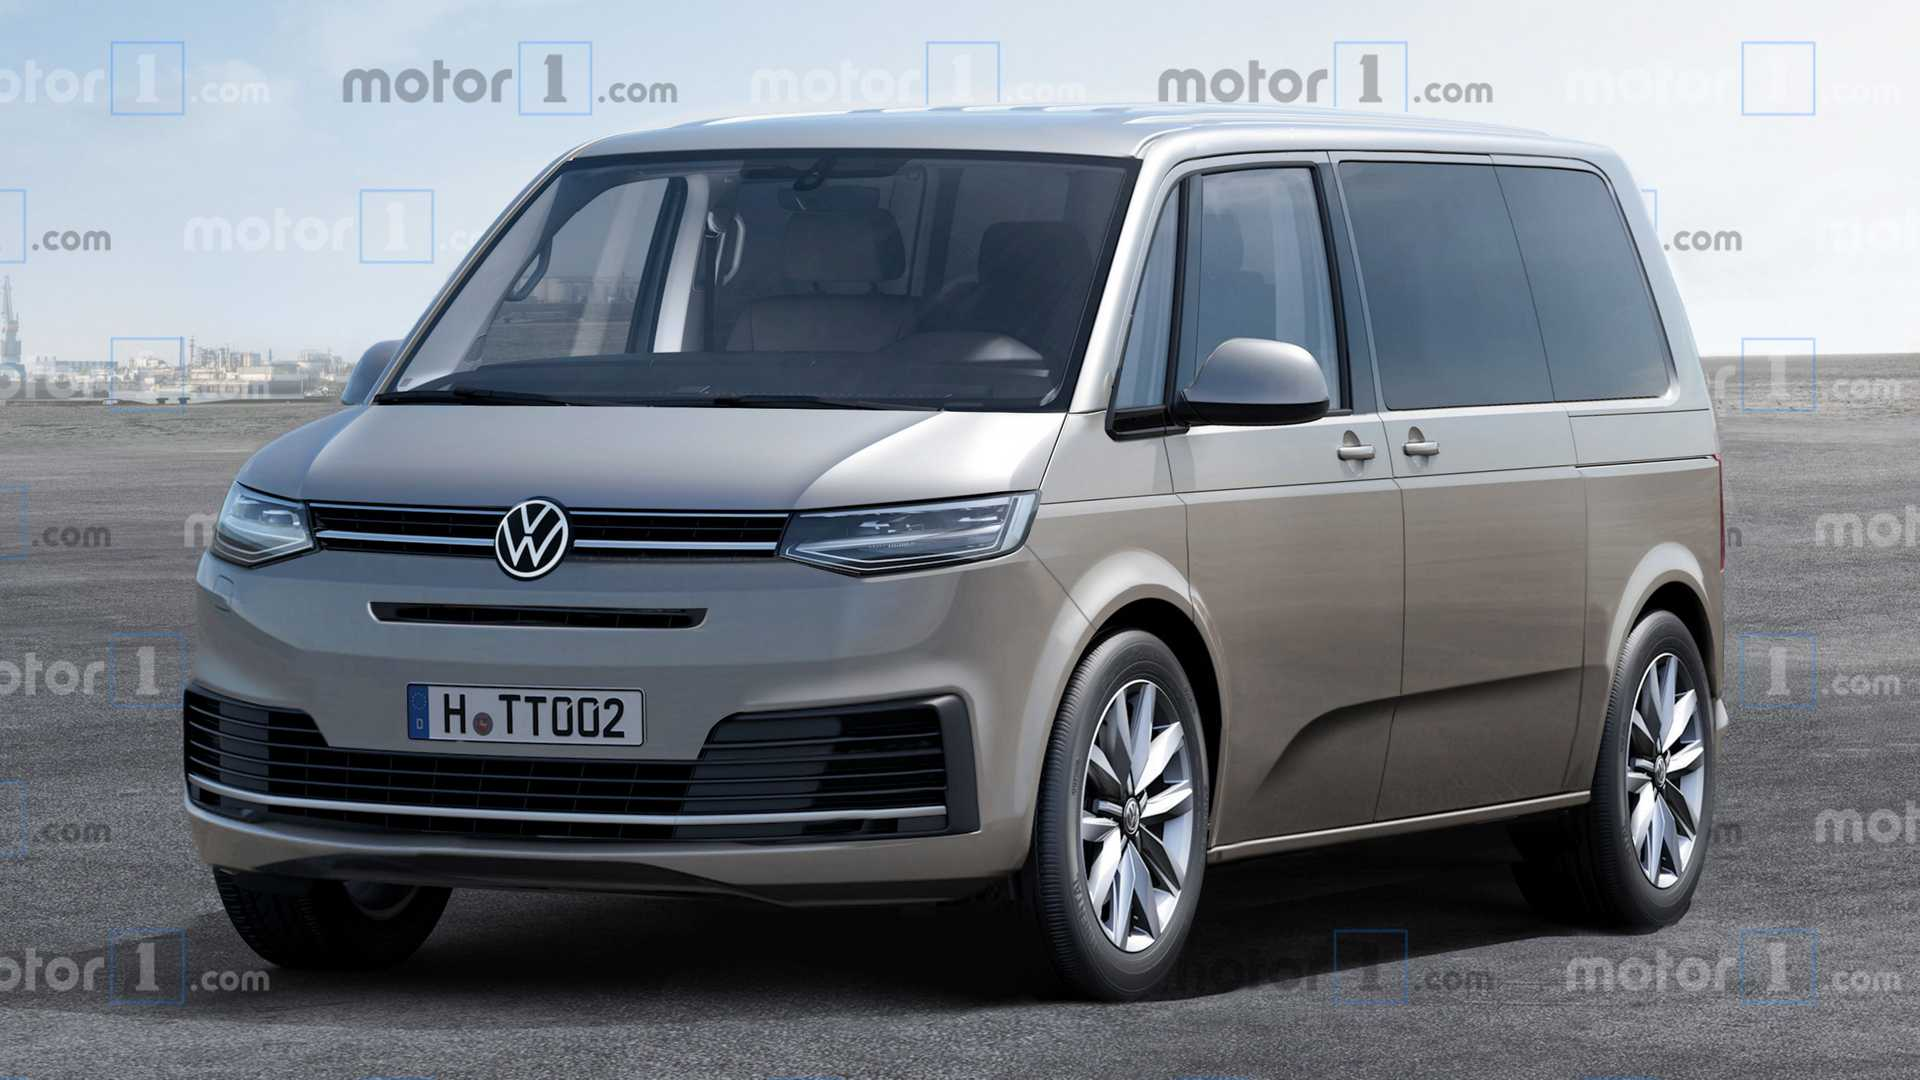 Upcoming Volkswagen T7 Van Visualized With Nip Here, Tuck There